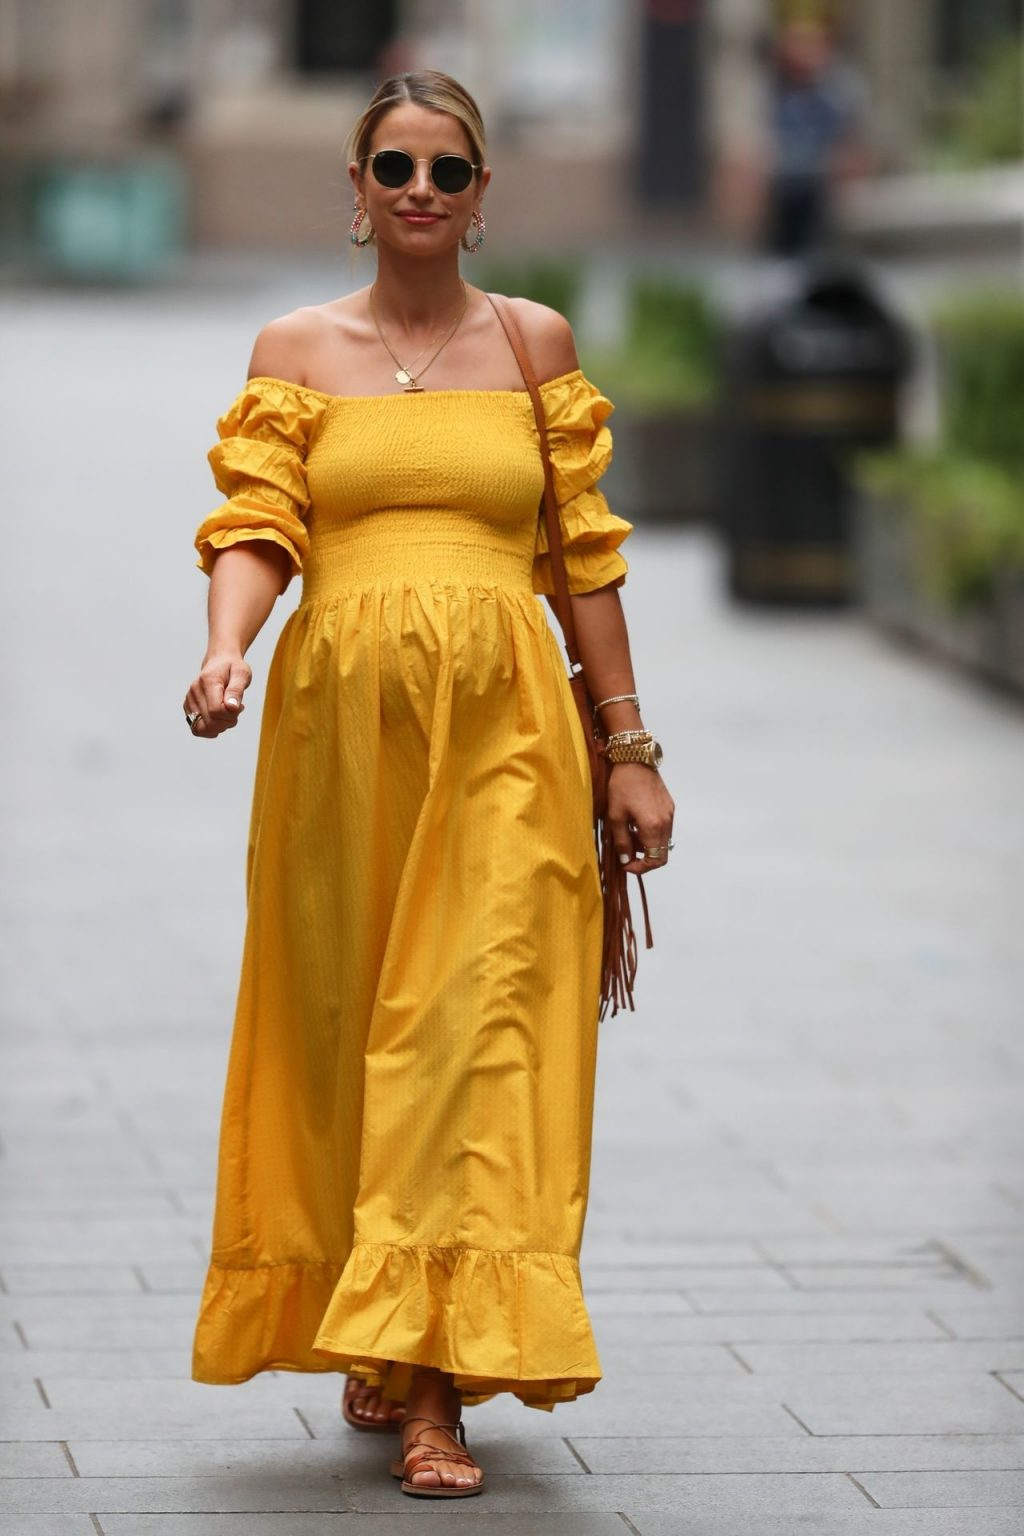 Vogue Williams Is Pictured Leaving Heart Radio Breakfast Show in a Yellow Dress (40 Photos)